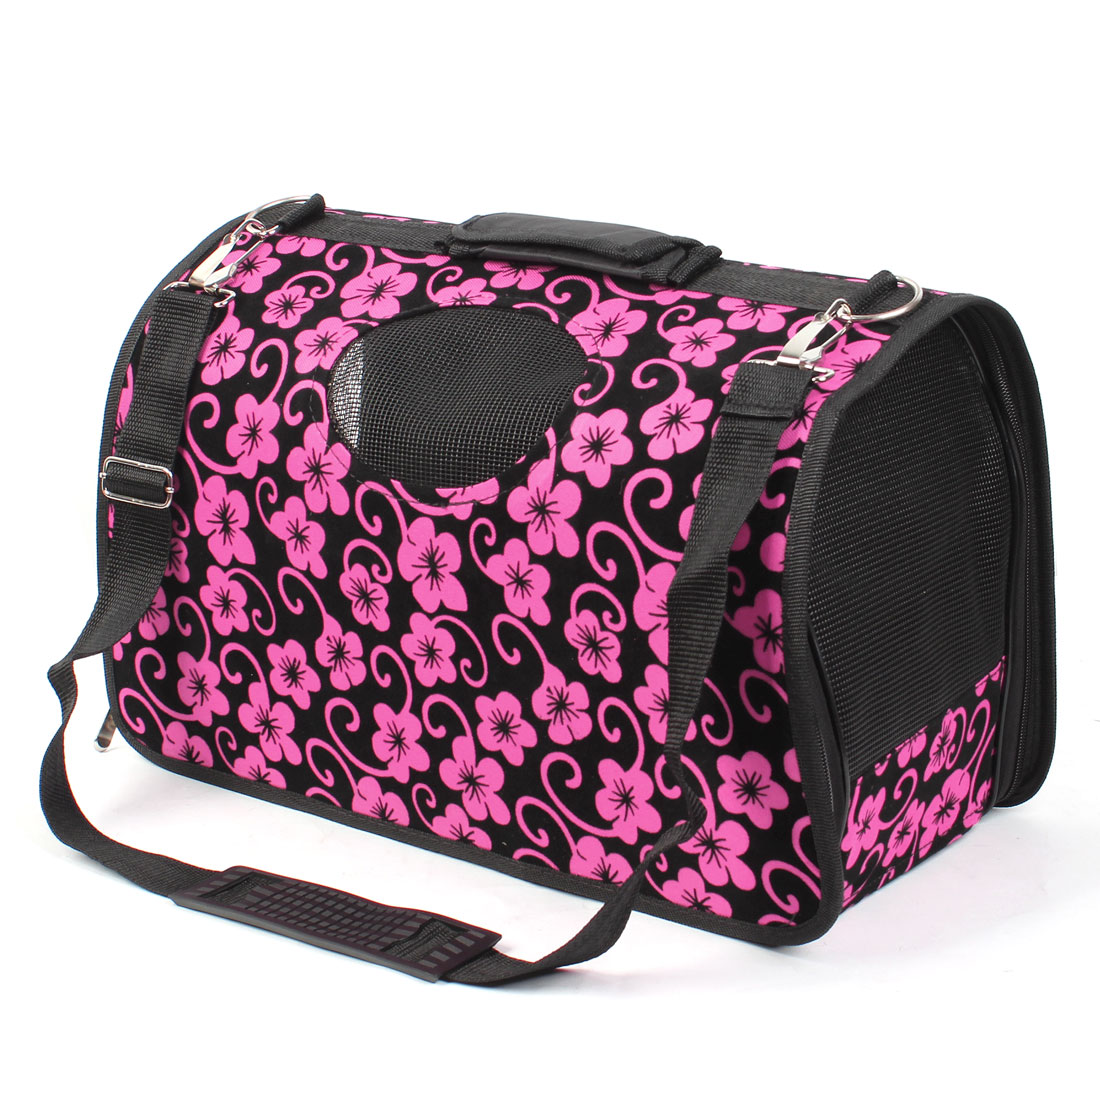 30cm High Flower Printed Folded Pet Dog Carrying Tote Mesh Bag Black Fuchsia